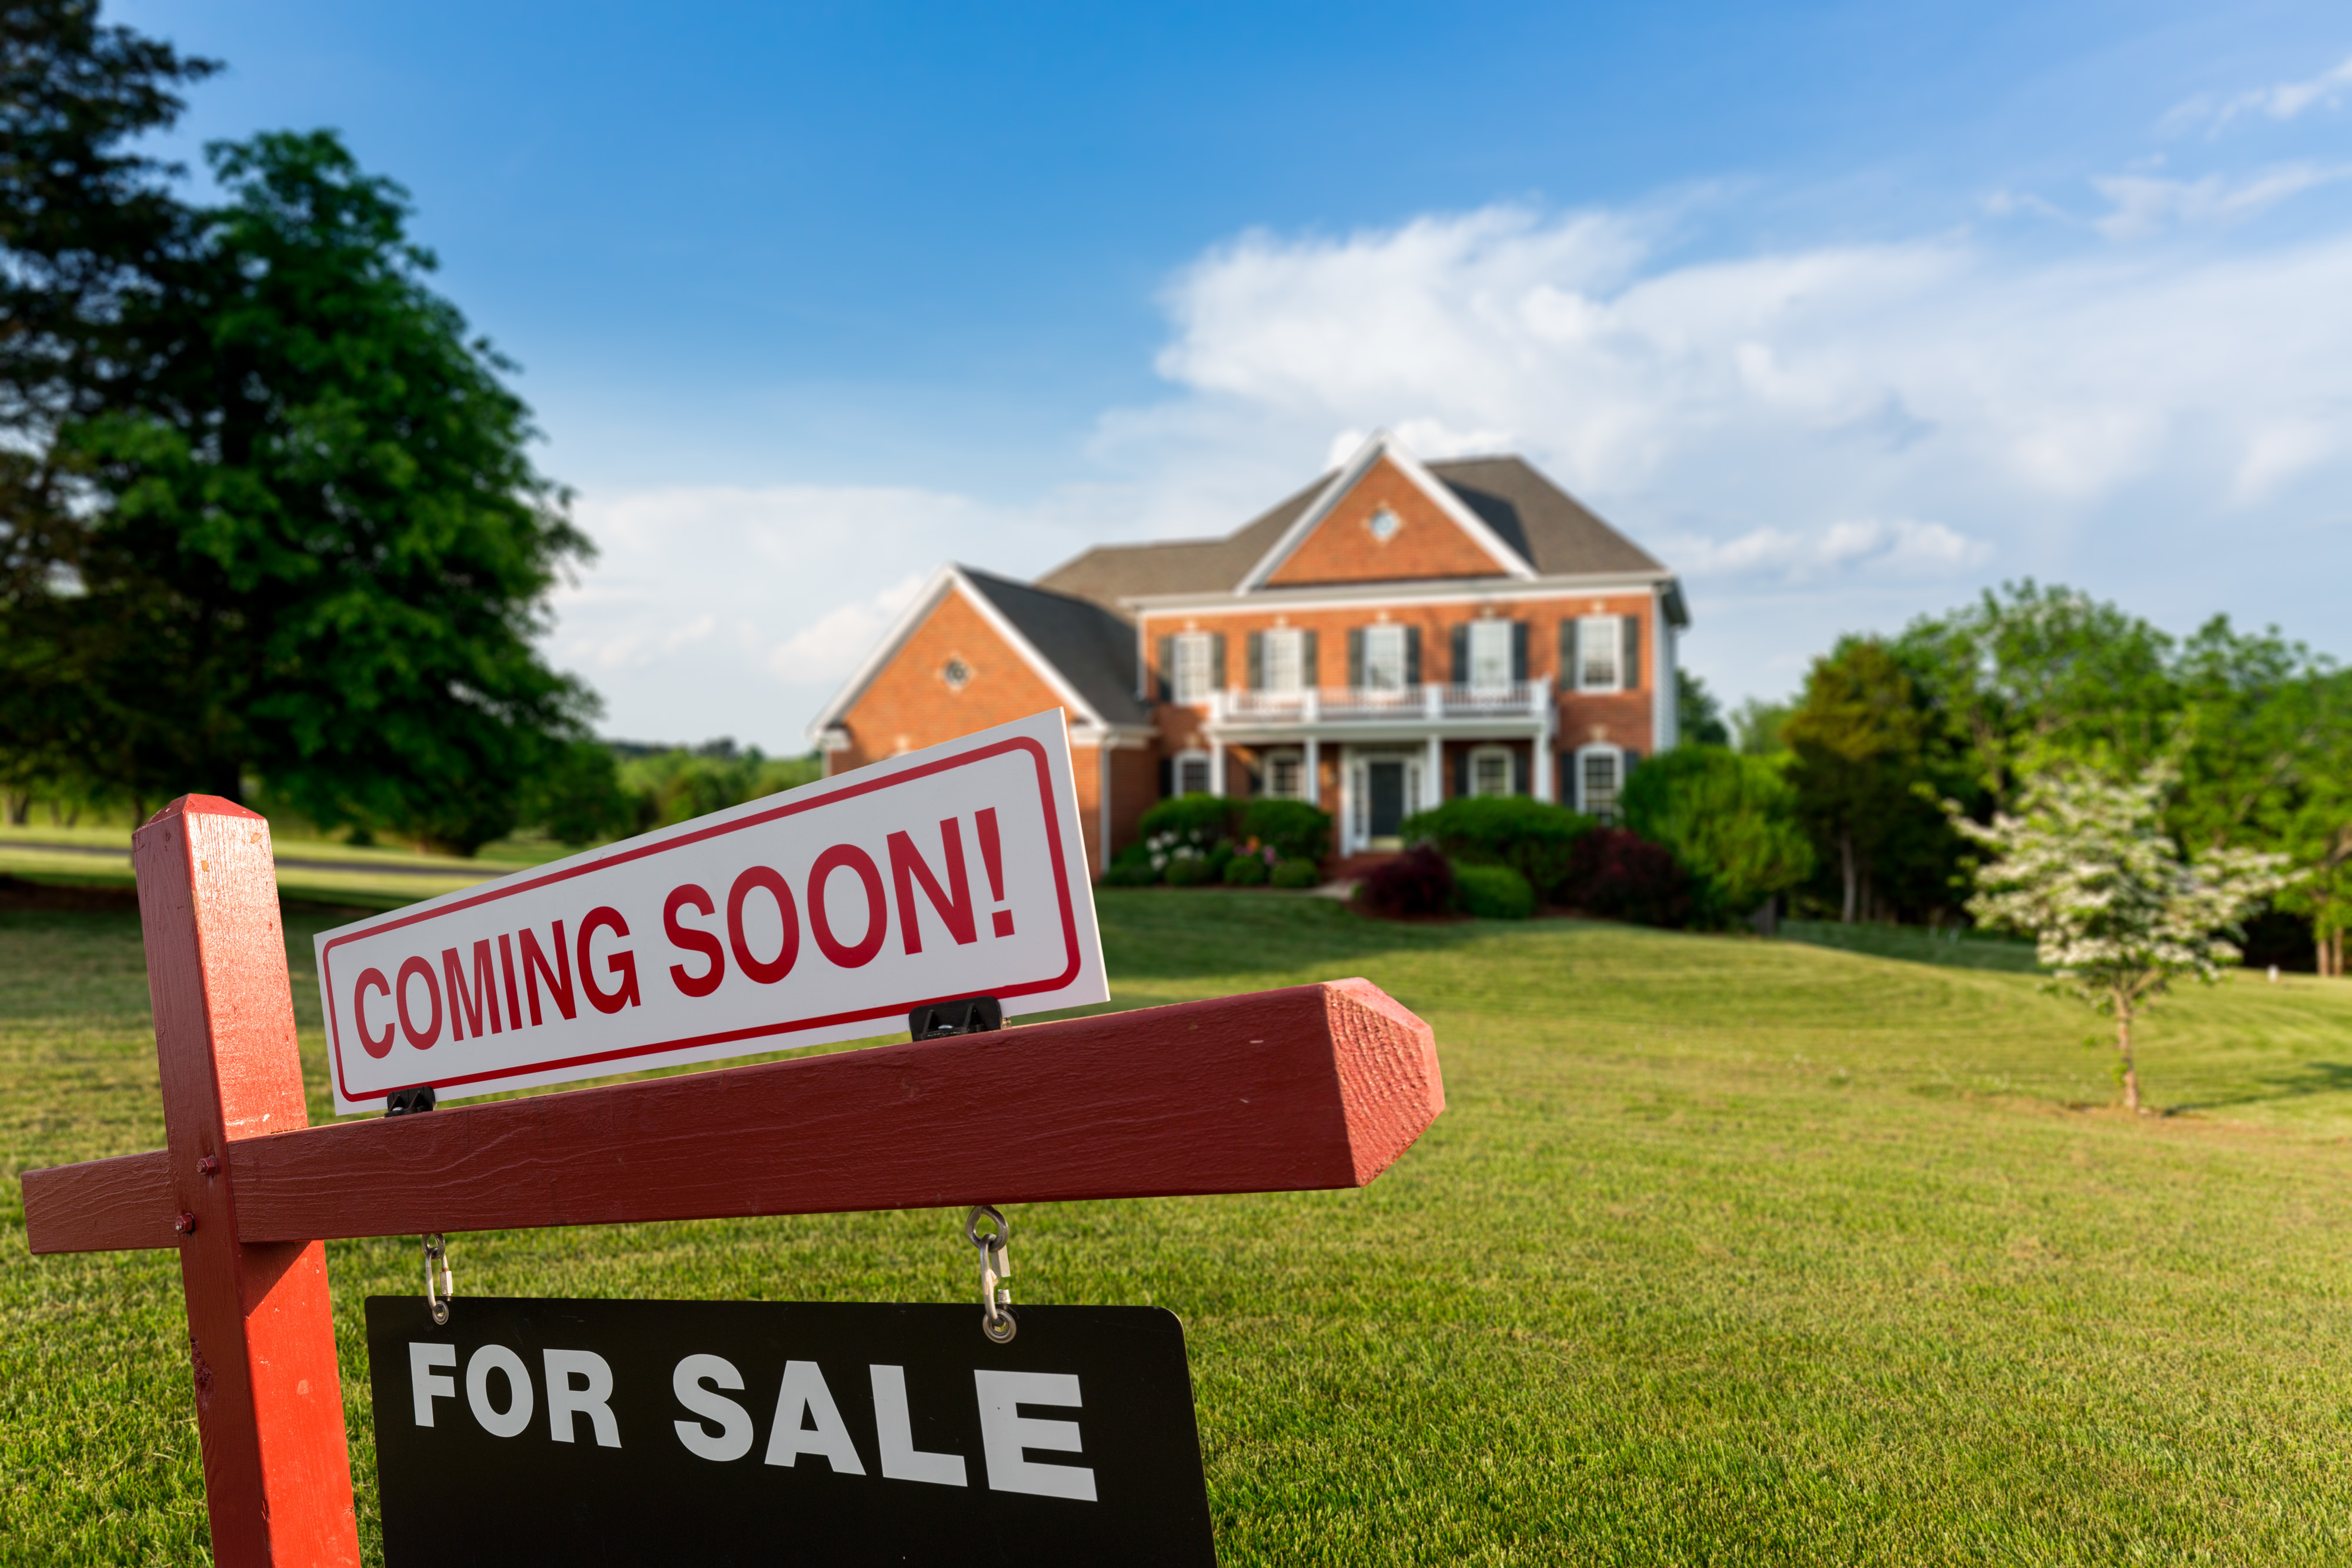 3 Things to Do Before Selling Your House to Make it Move Faster